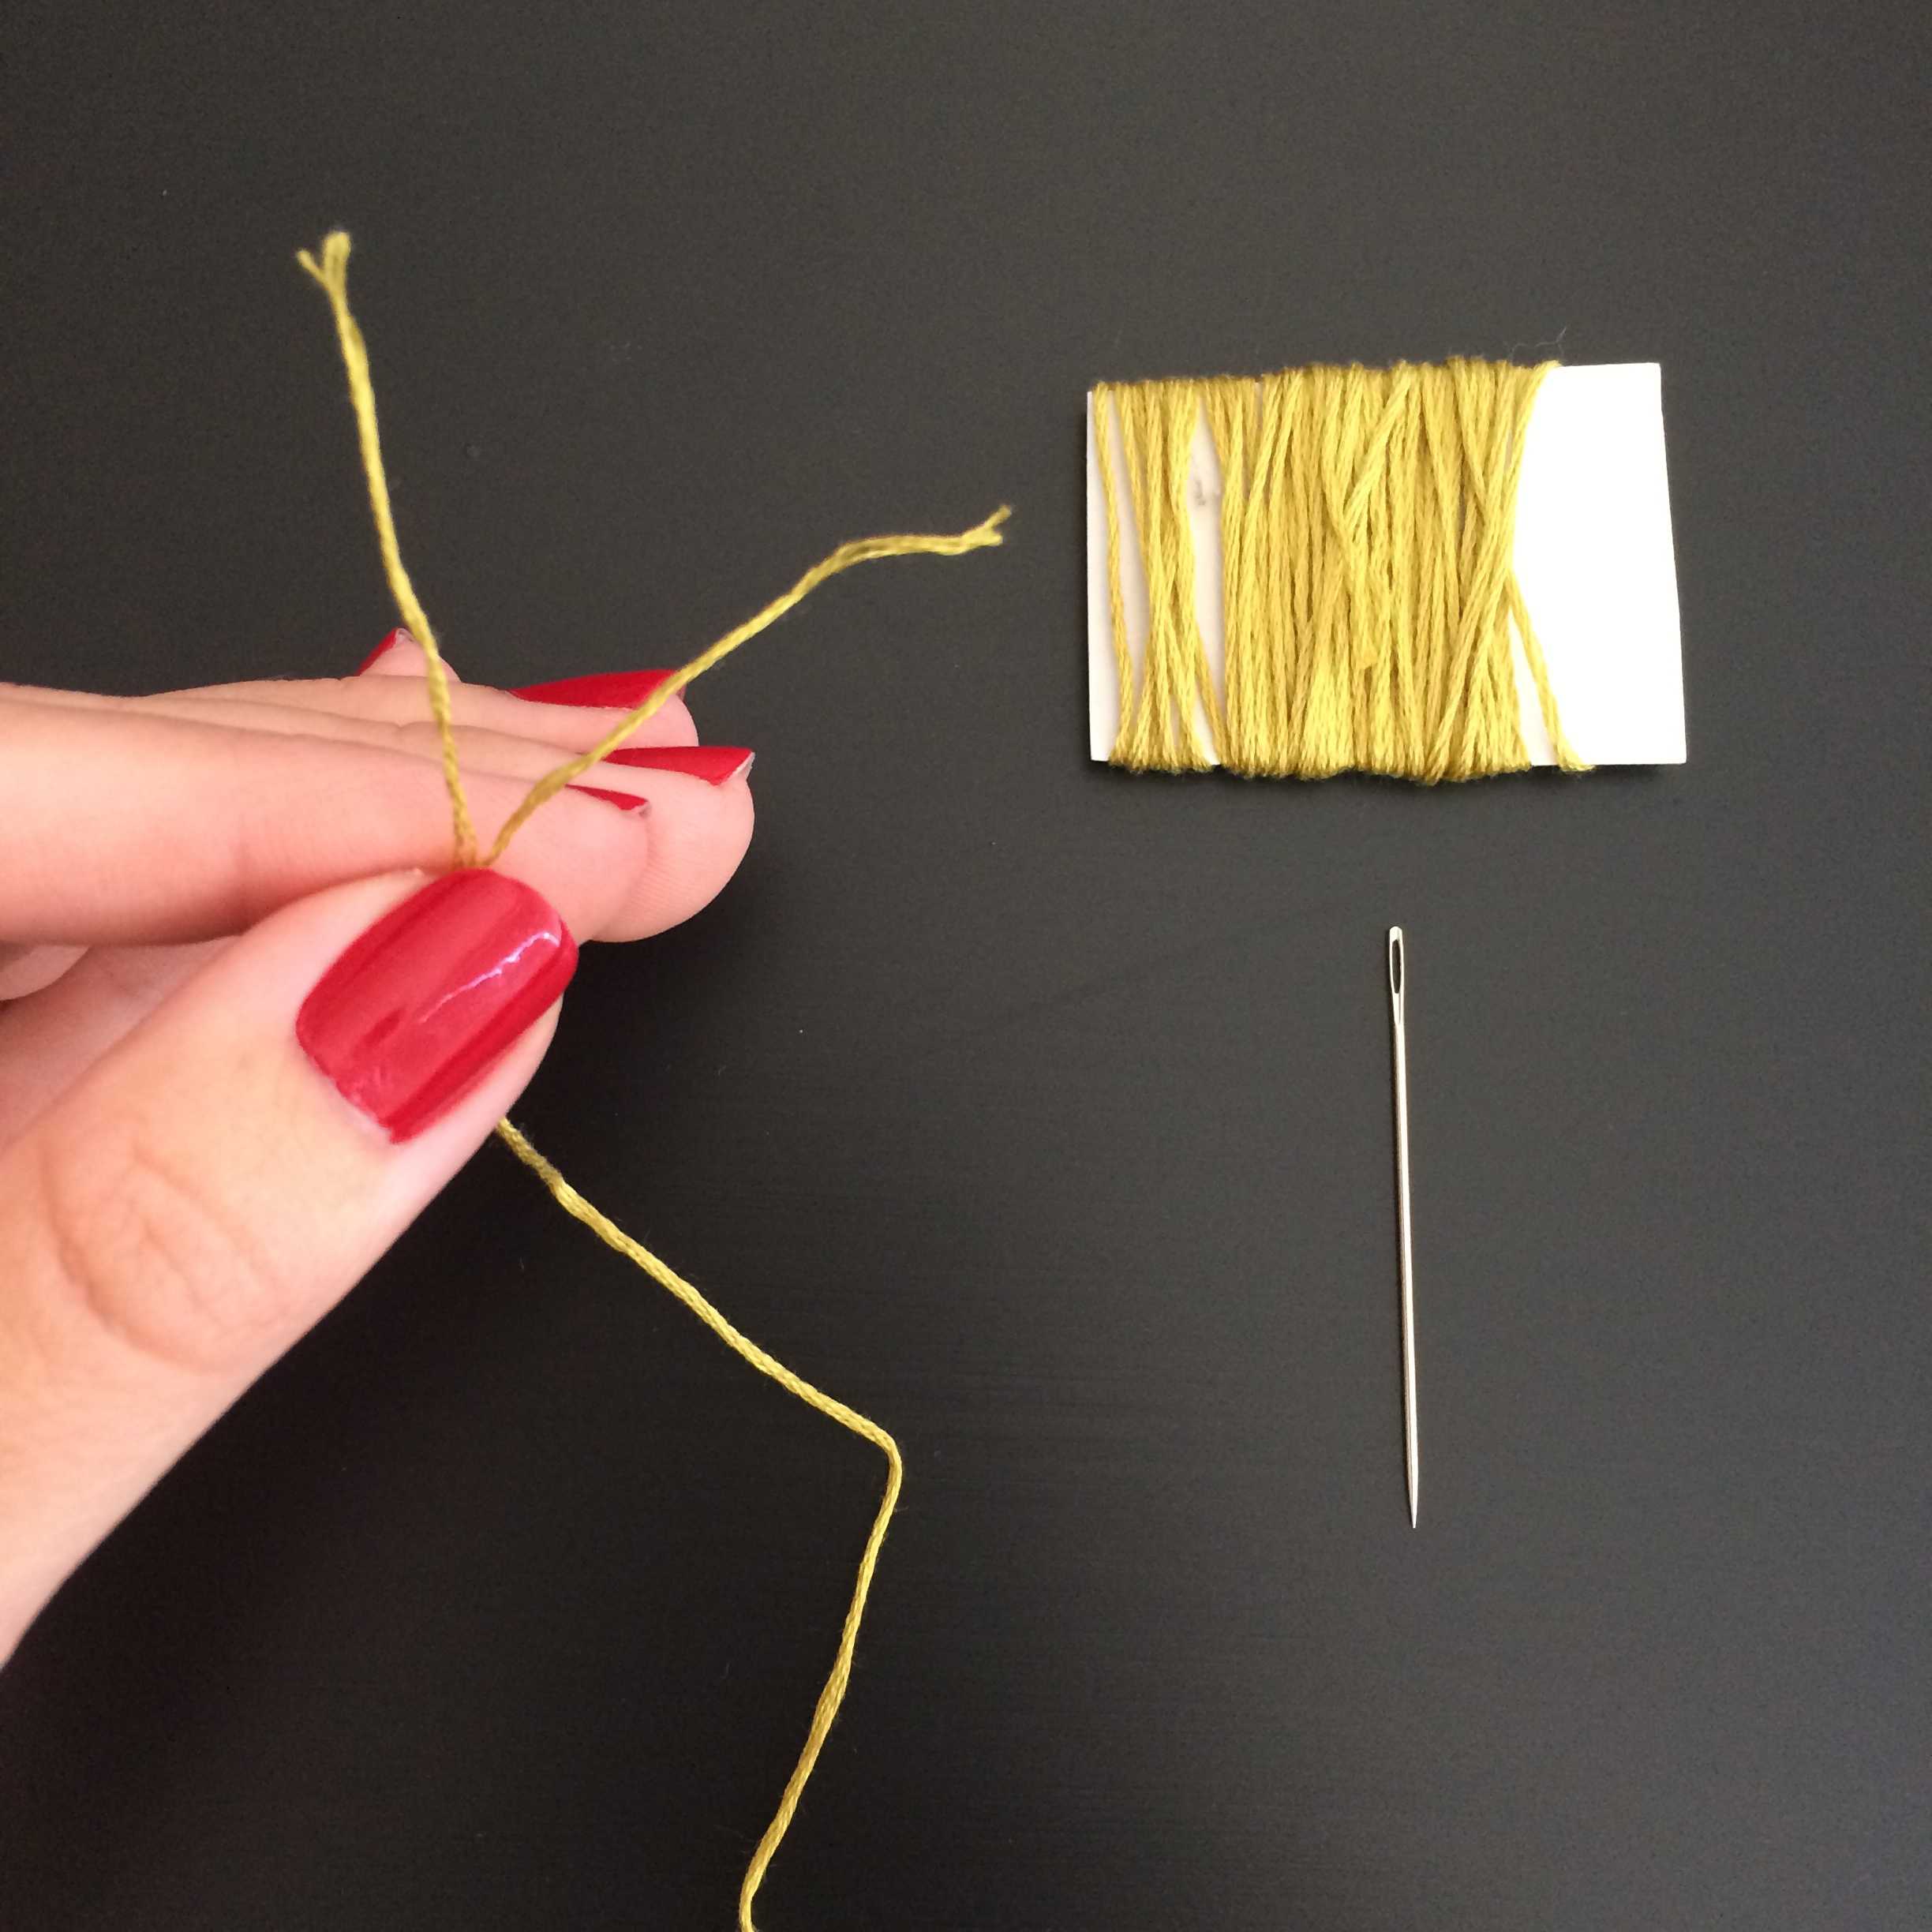 Embroidery Floss | Mrs Amber Apple Blog